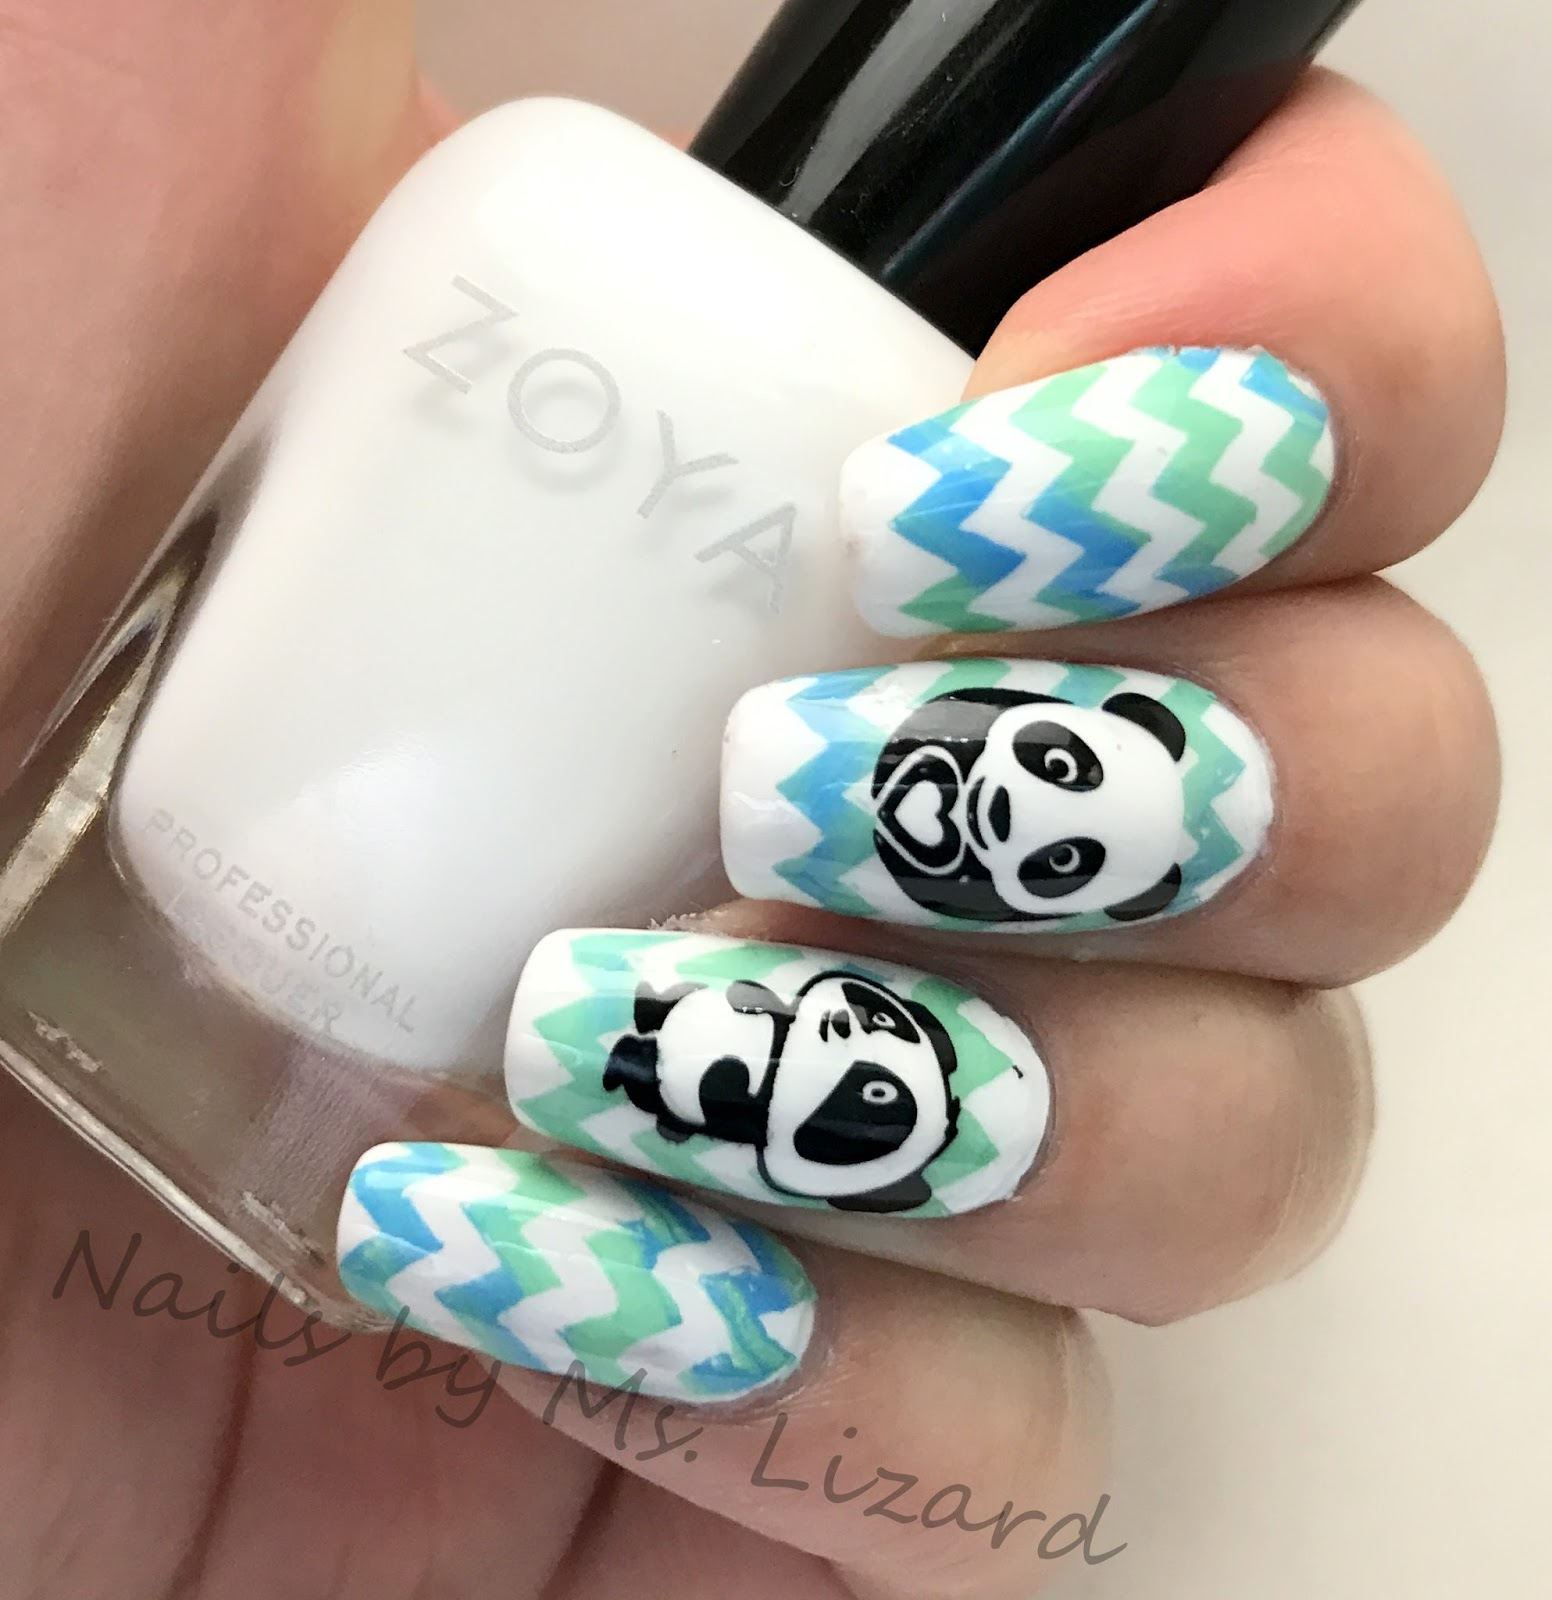 Nails by ms lizard born pretty store stamping plate cute panda base zoya purity prinsesfo Images